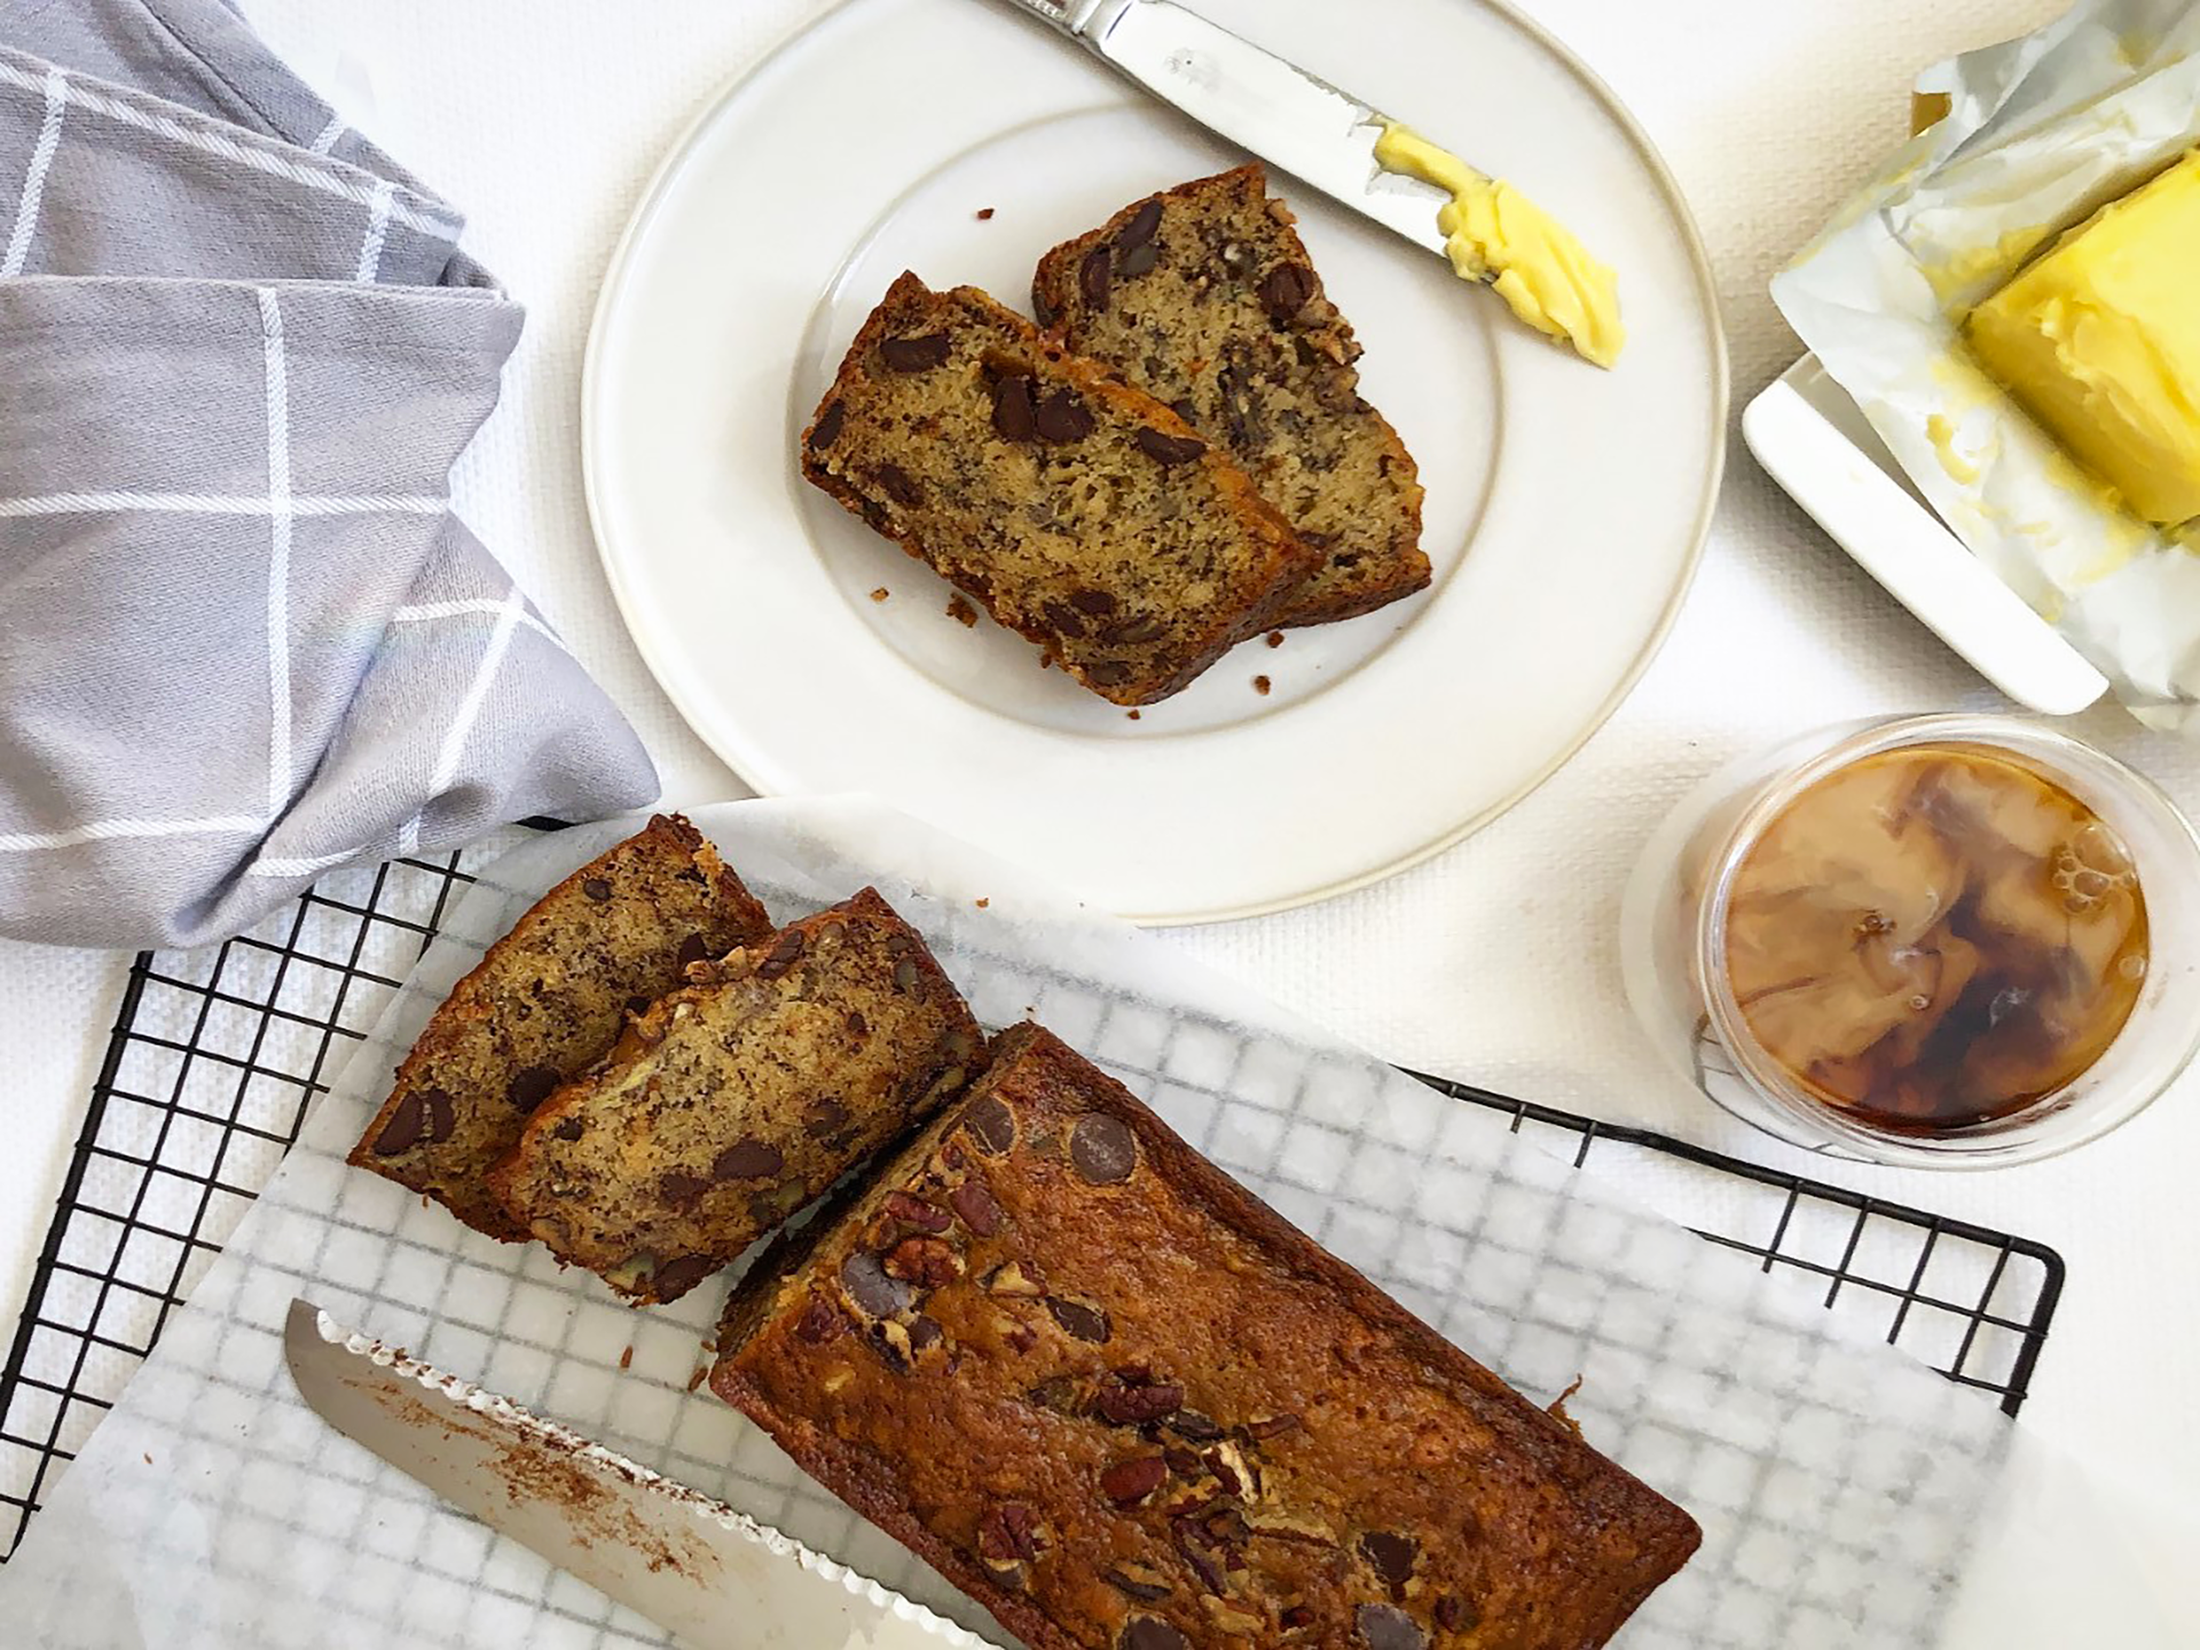 mr - Chocolate Chip Banana Bread Image